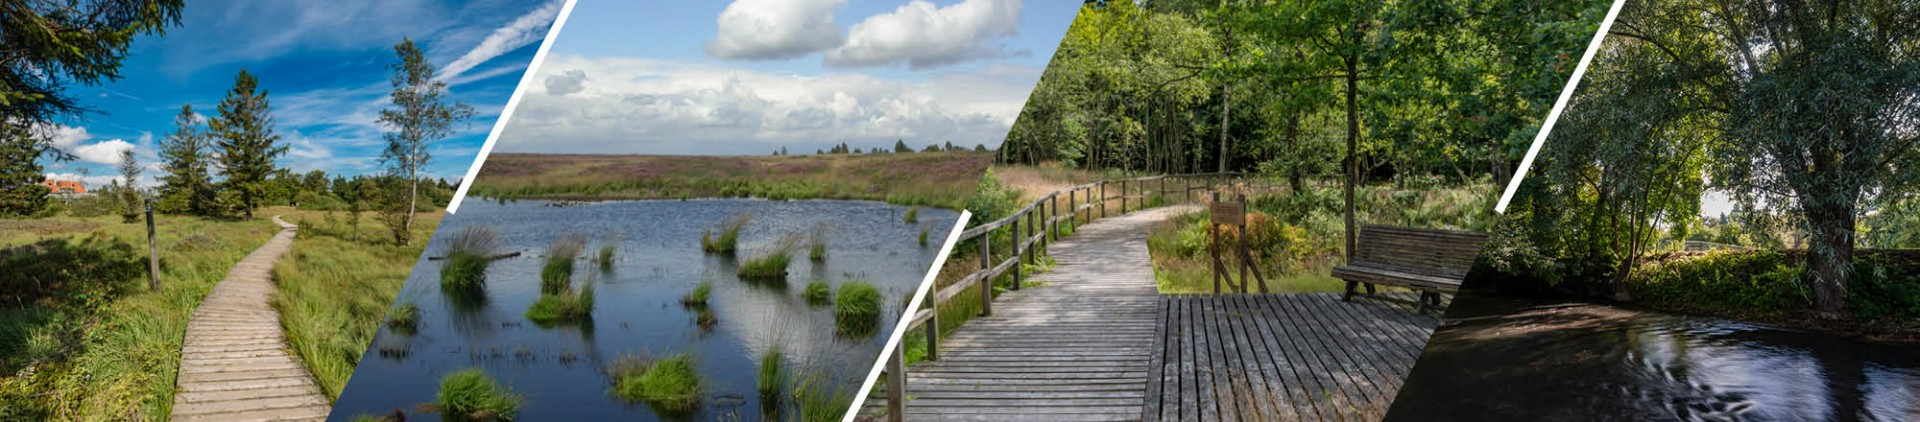 Renowned natural parks in Liège province